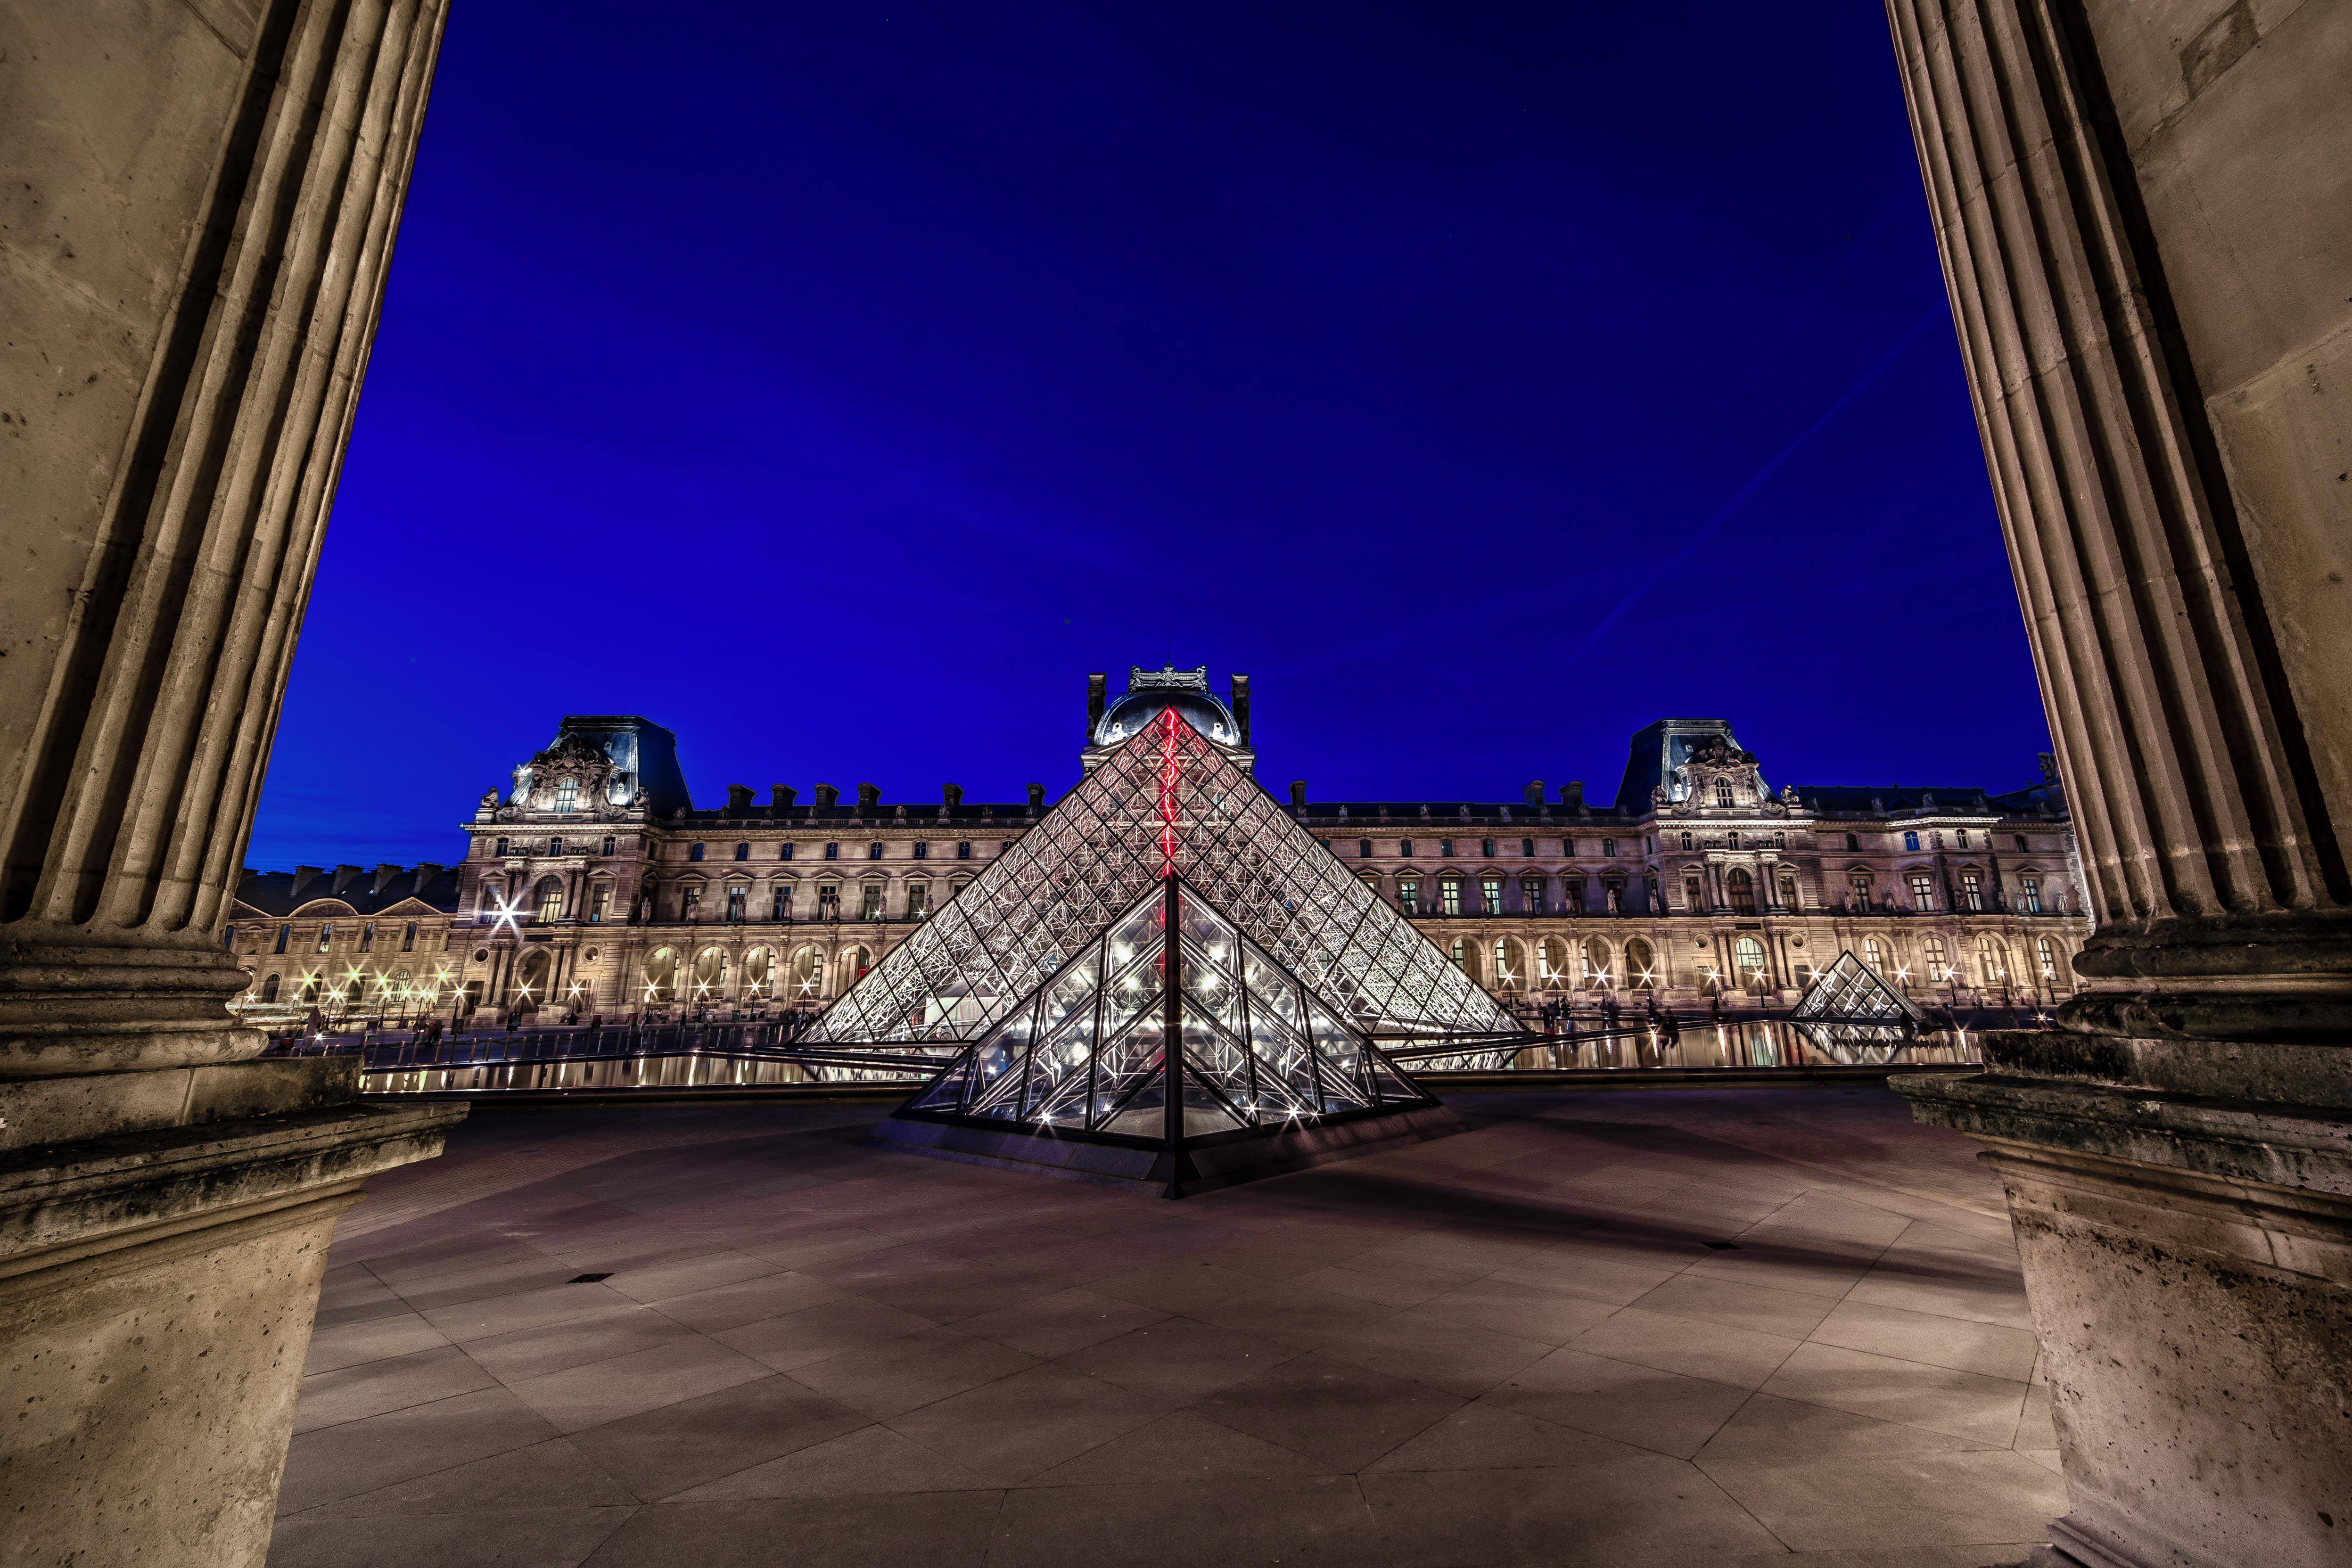 Louvre At Night by Darwin. Taken with a Canon 6D and Rokinon 14mm f/2.8